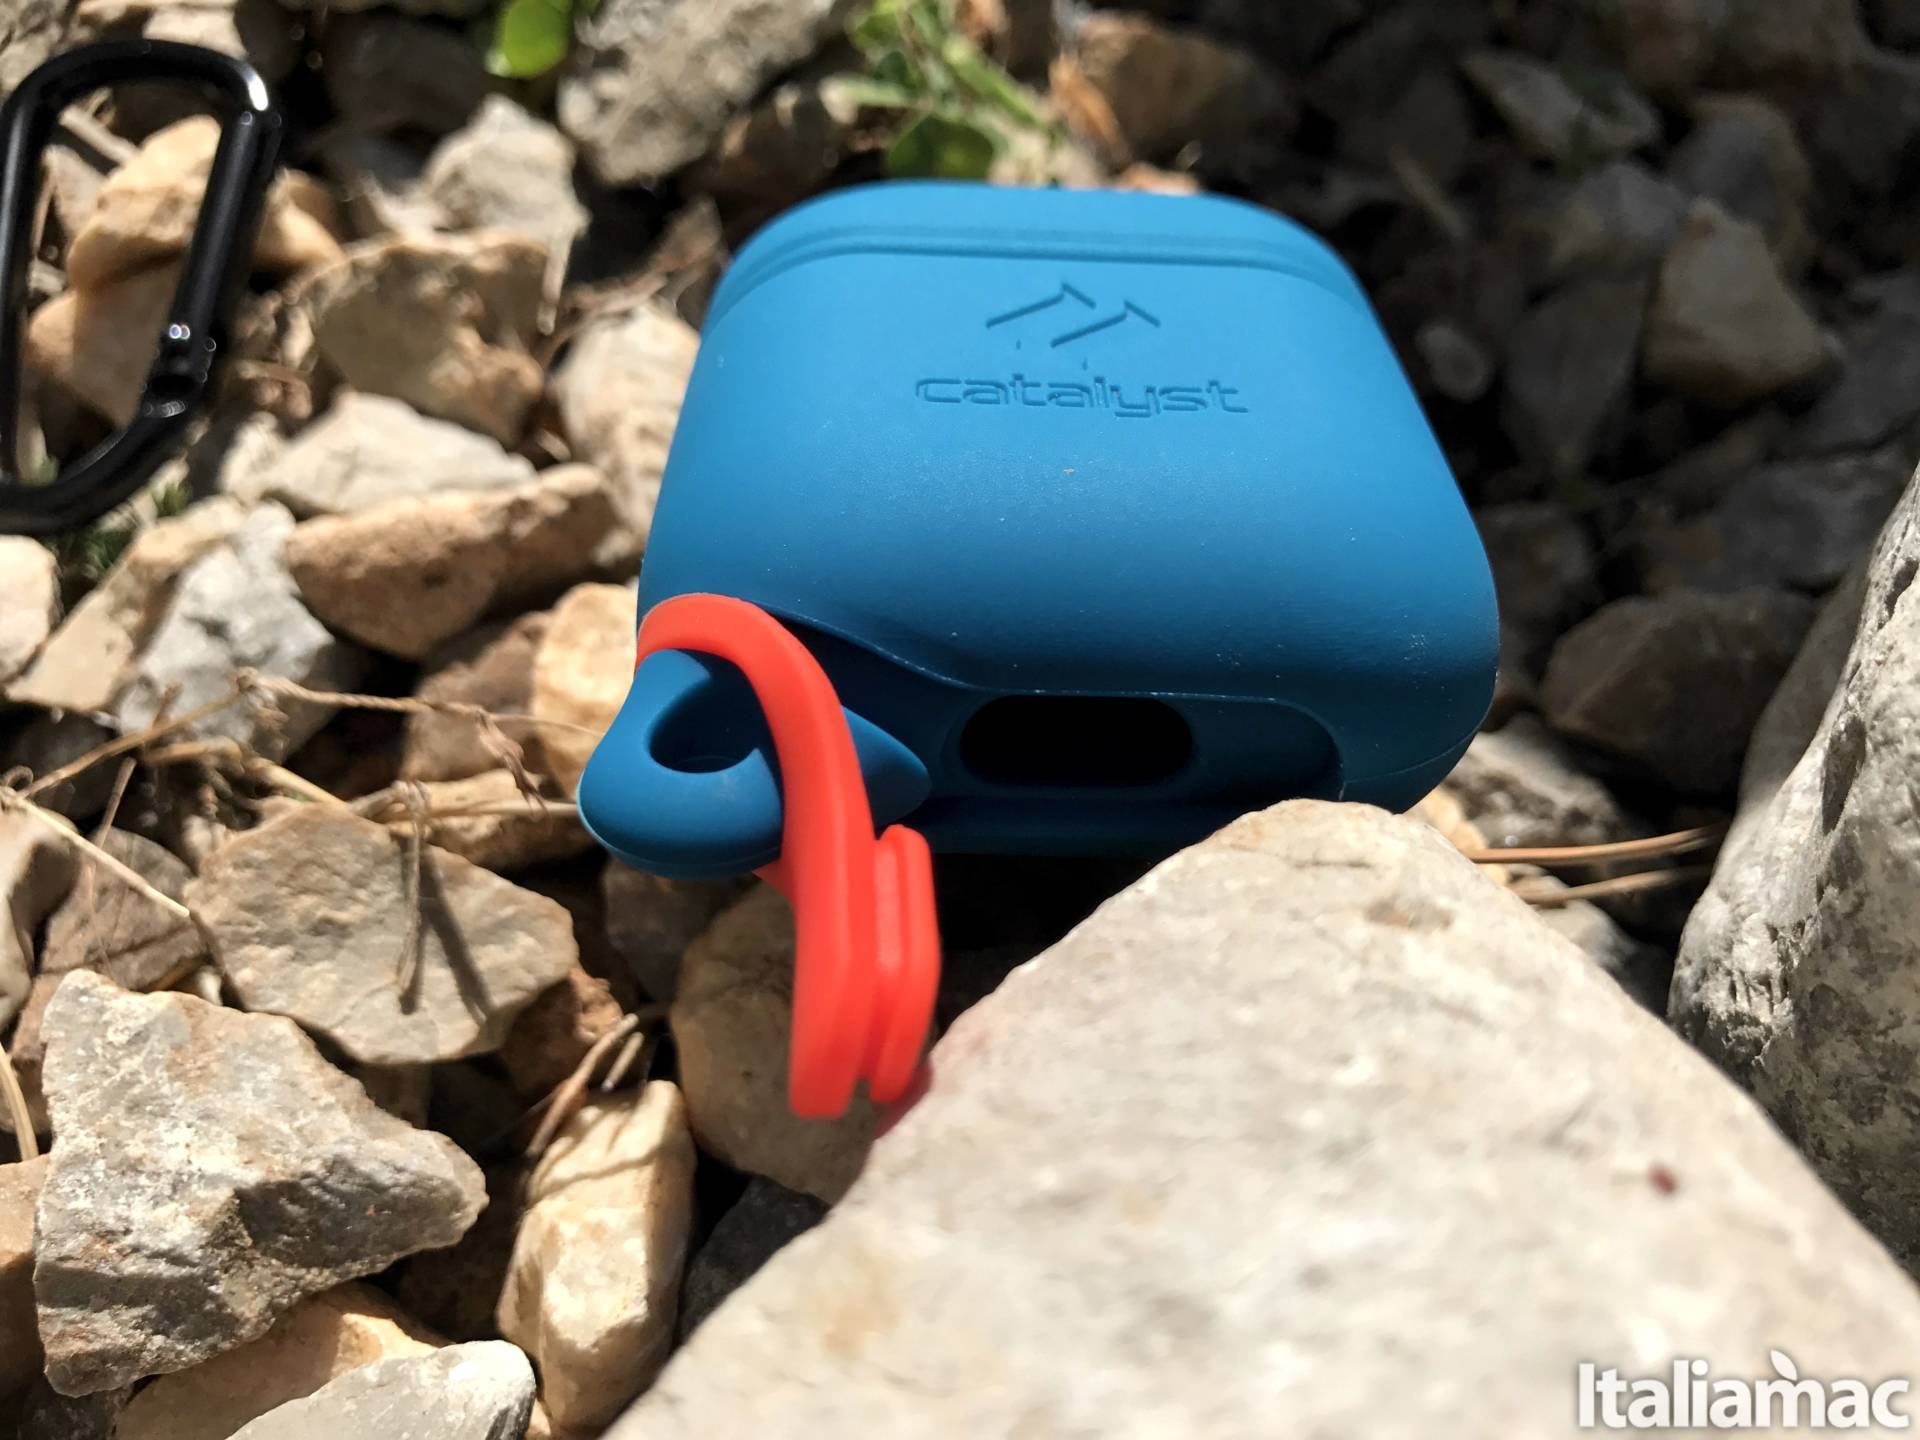 www.italiamac.it catalyst airpods case down opened Proteggi le AirPods da cadute e schizzi dacqua con il case di Catalyst